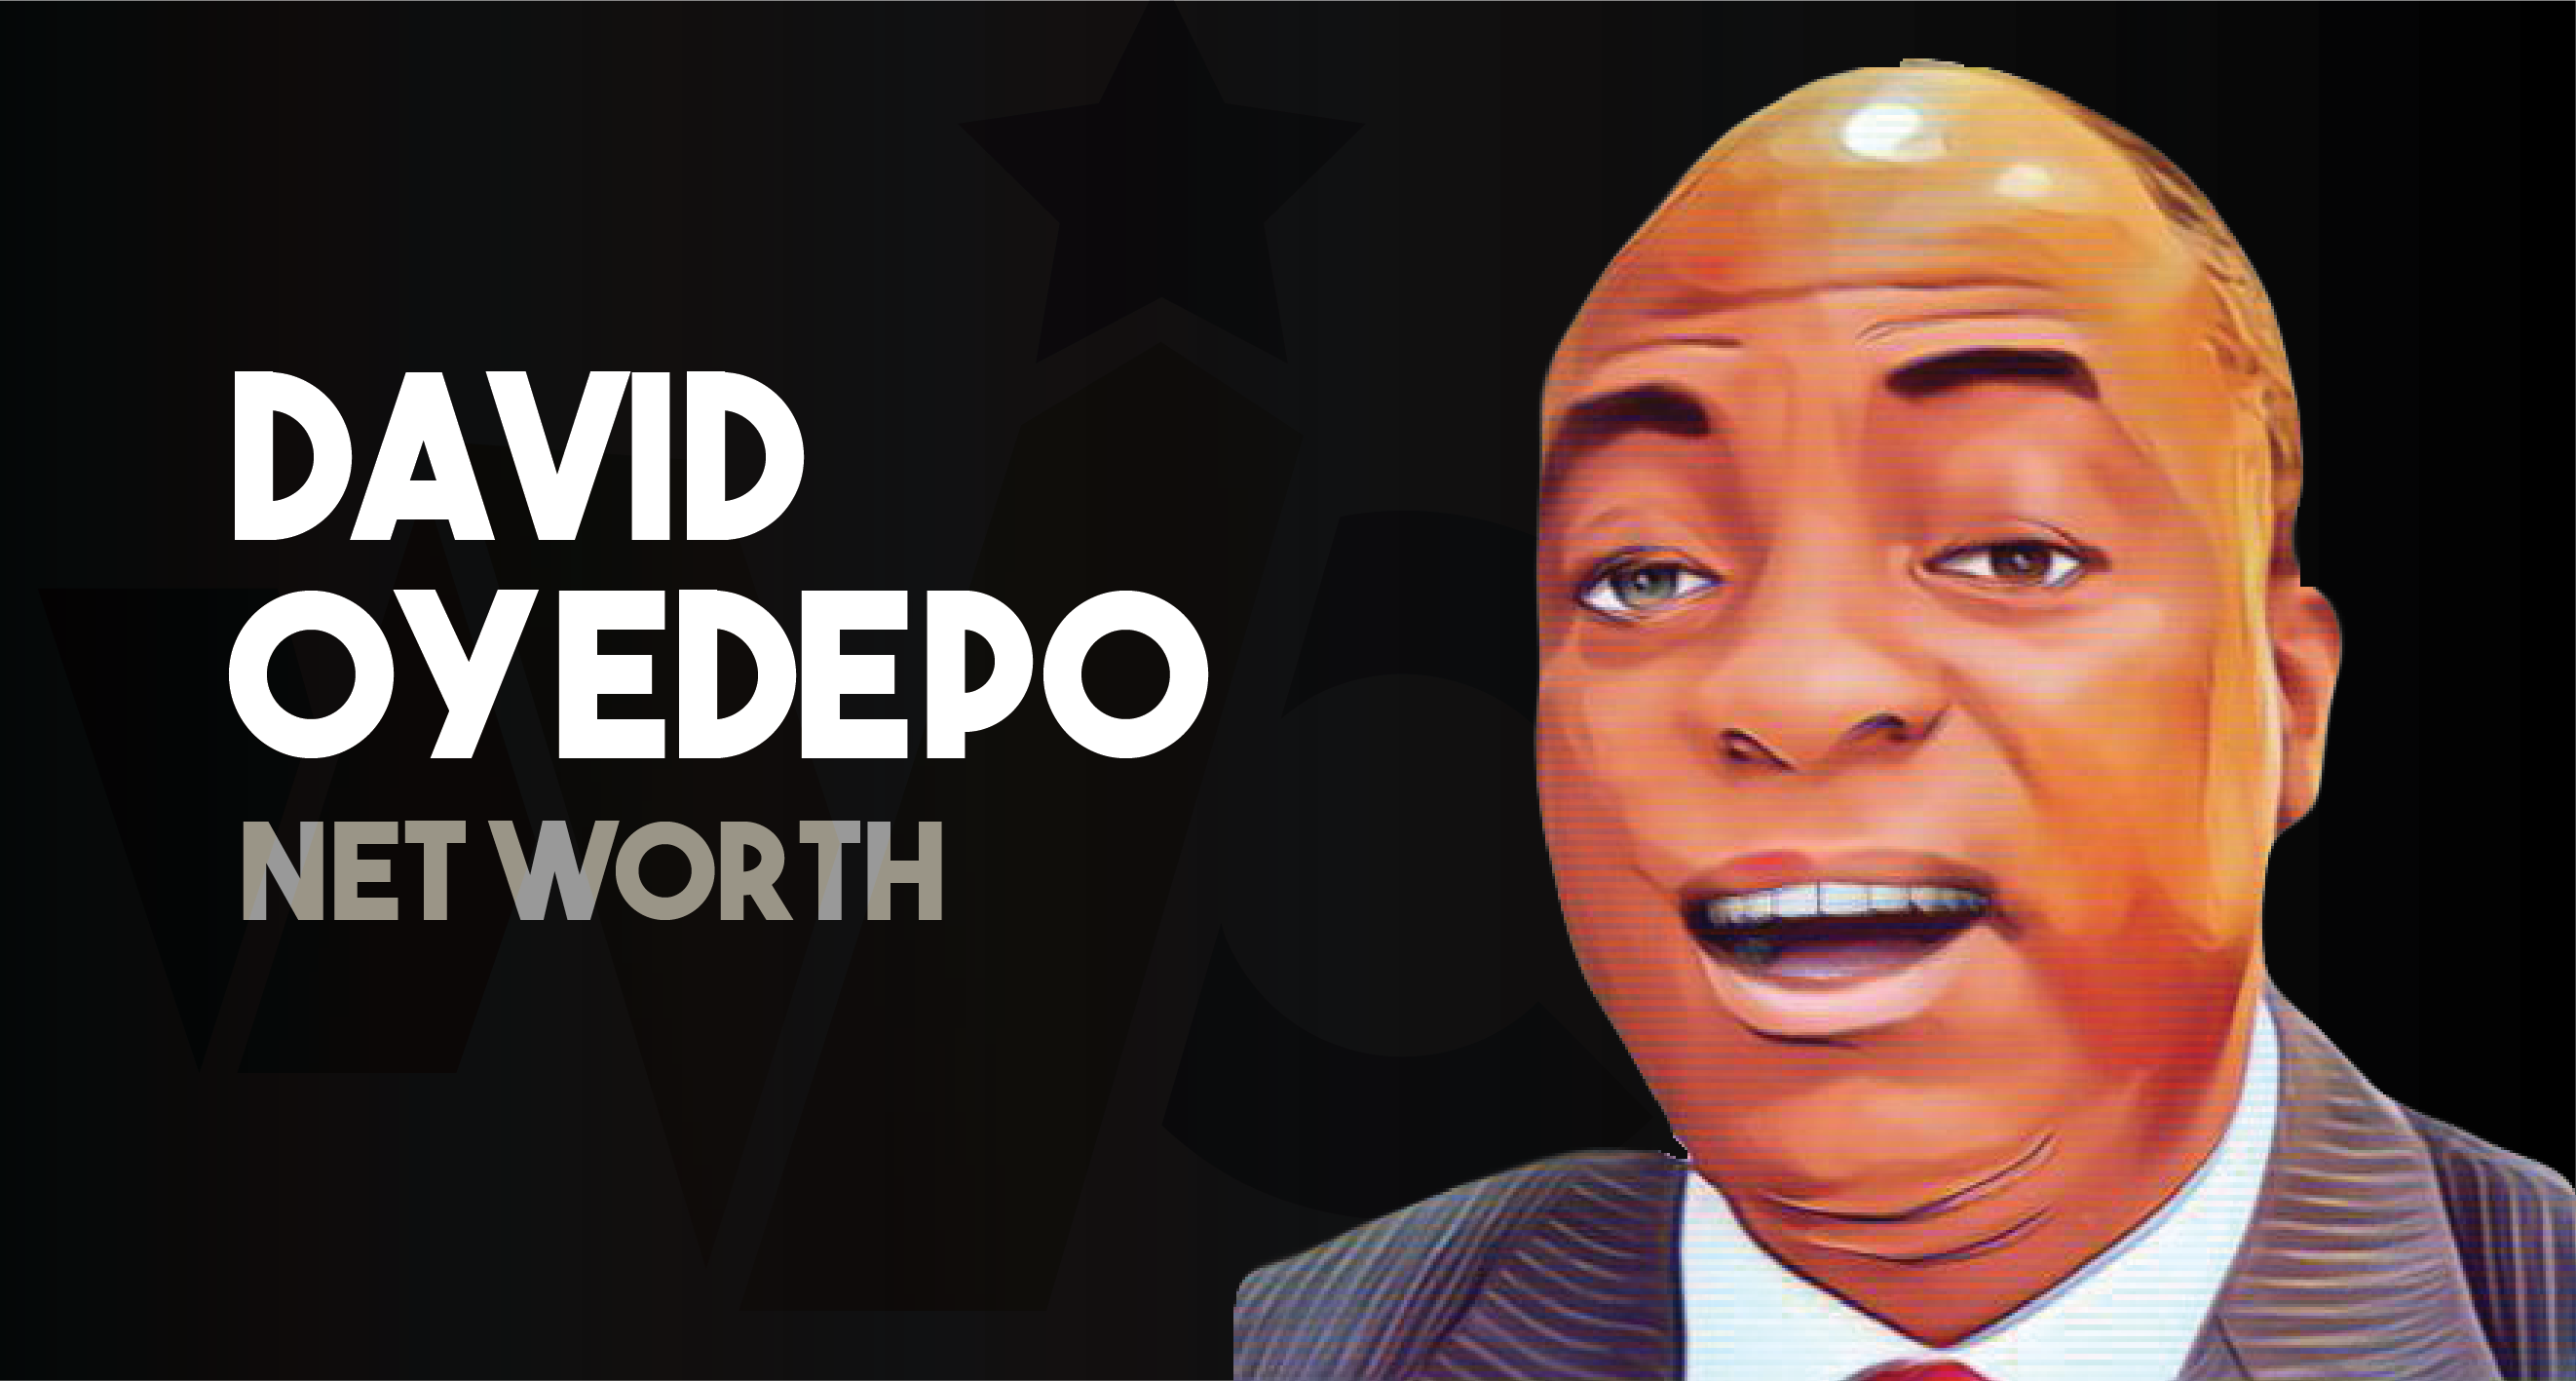 David Oyedepo - Net Worth